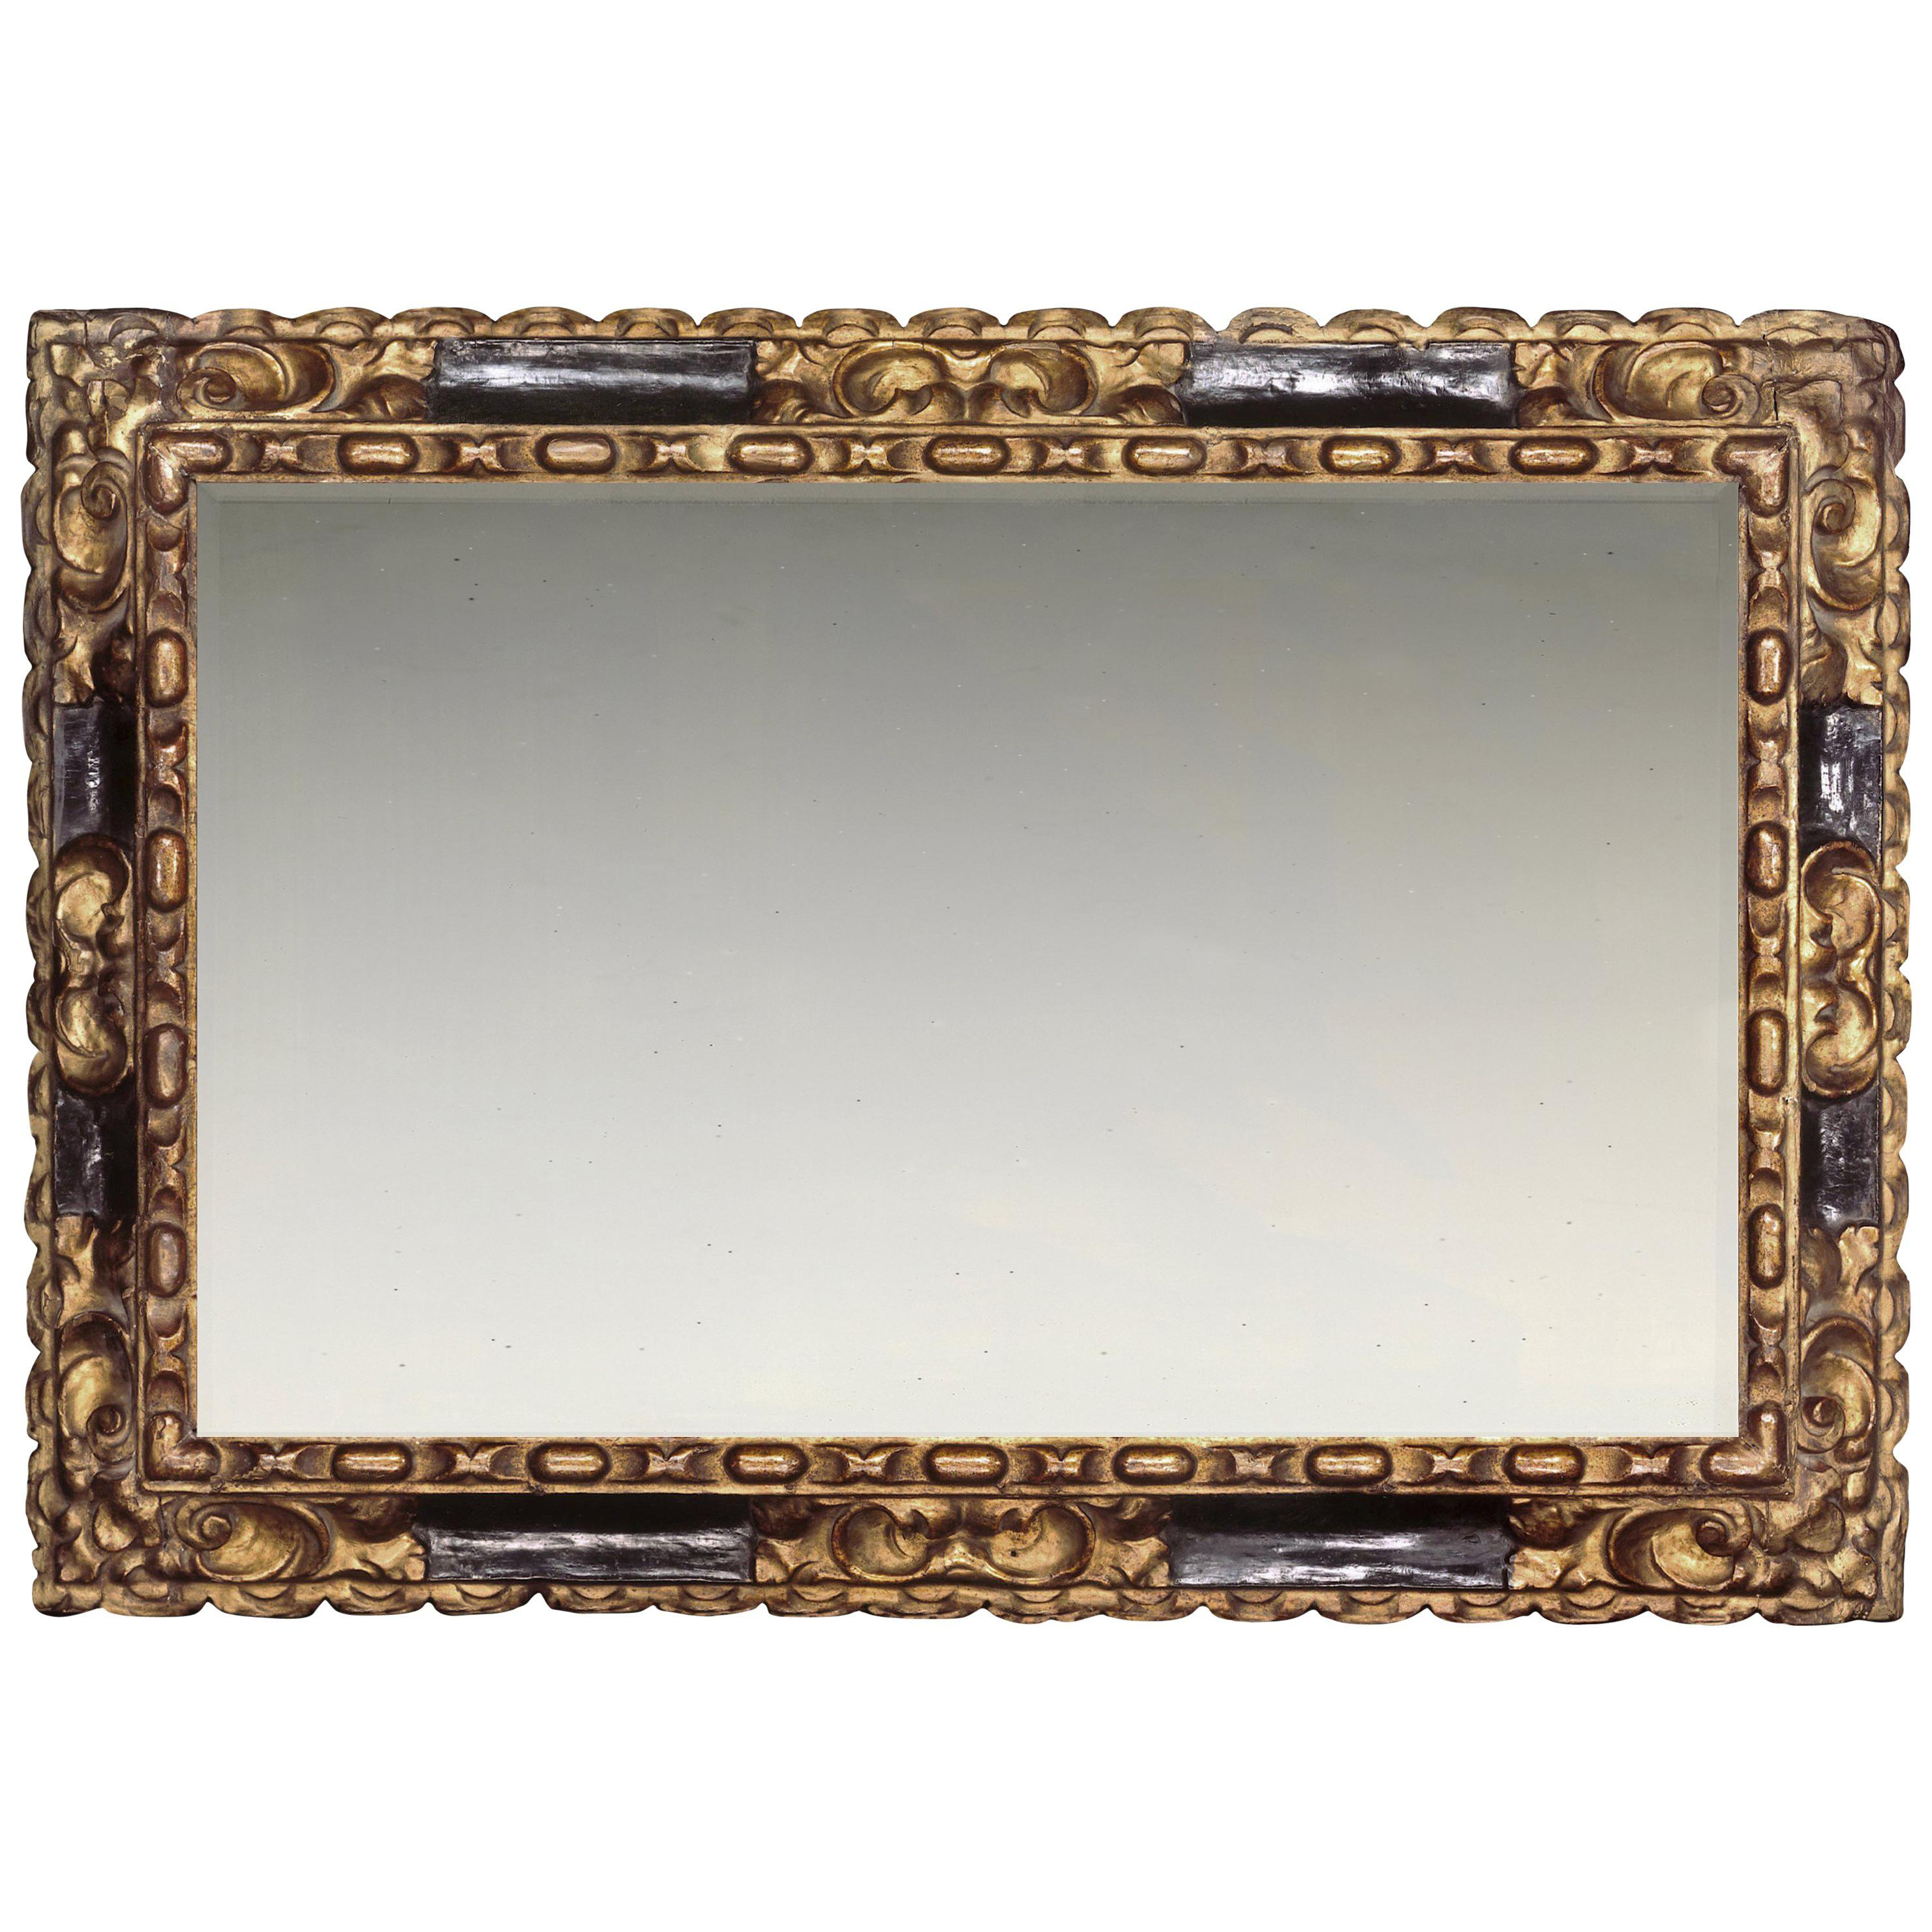 2d65f27f6ccf Antique and Vintage Mirrors - 15